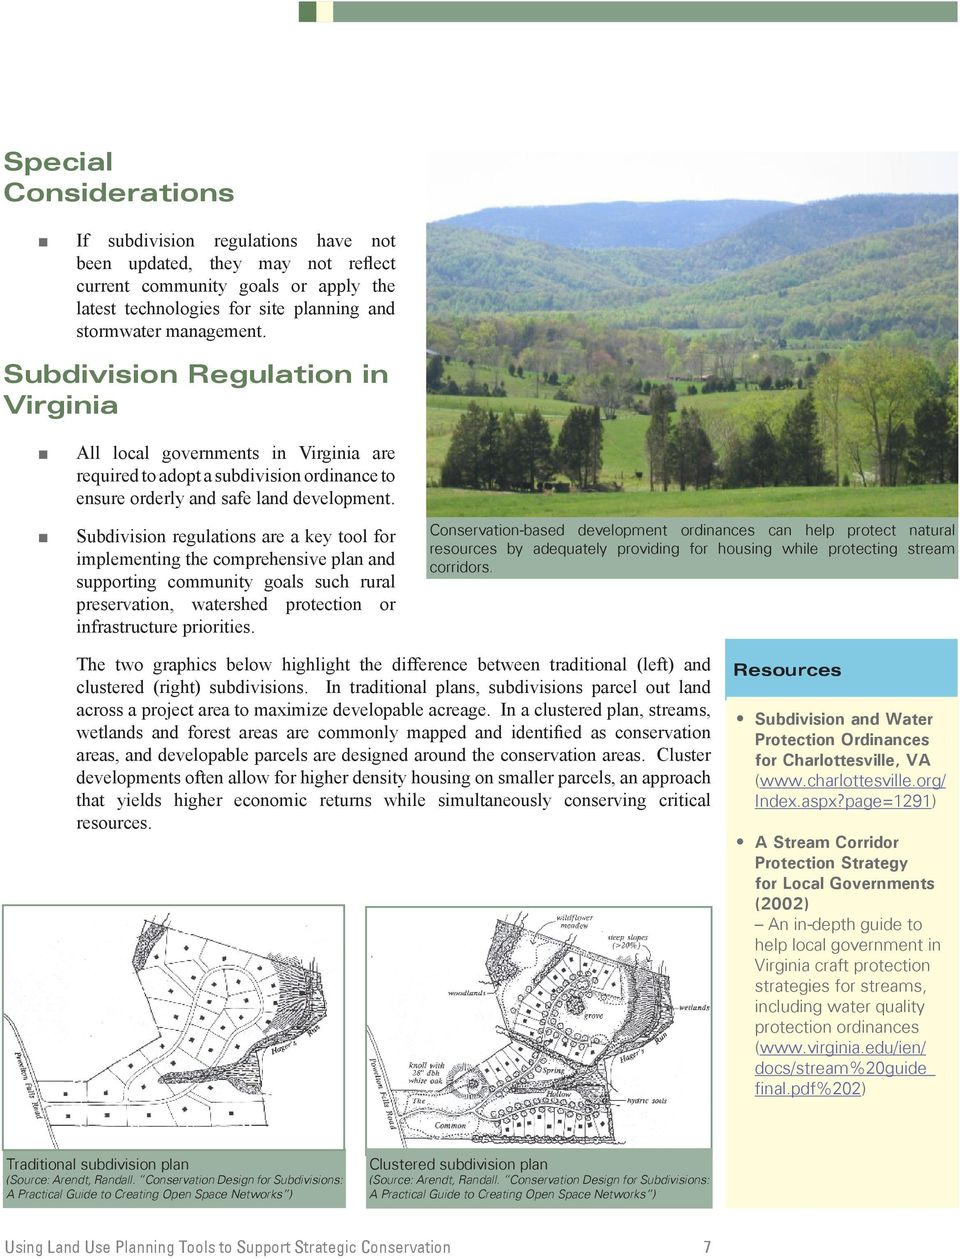 + Subdivision regulations are a key tool for implementing the comprehensive plan and supporting community goals such rural preservation, watershed protection or infrastructure priorities.